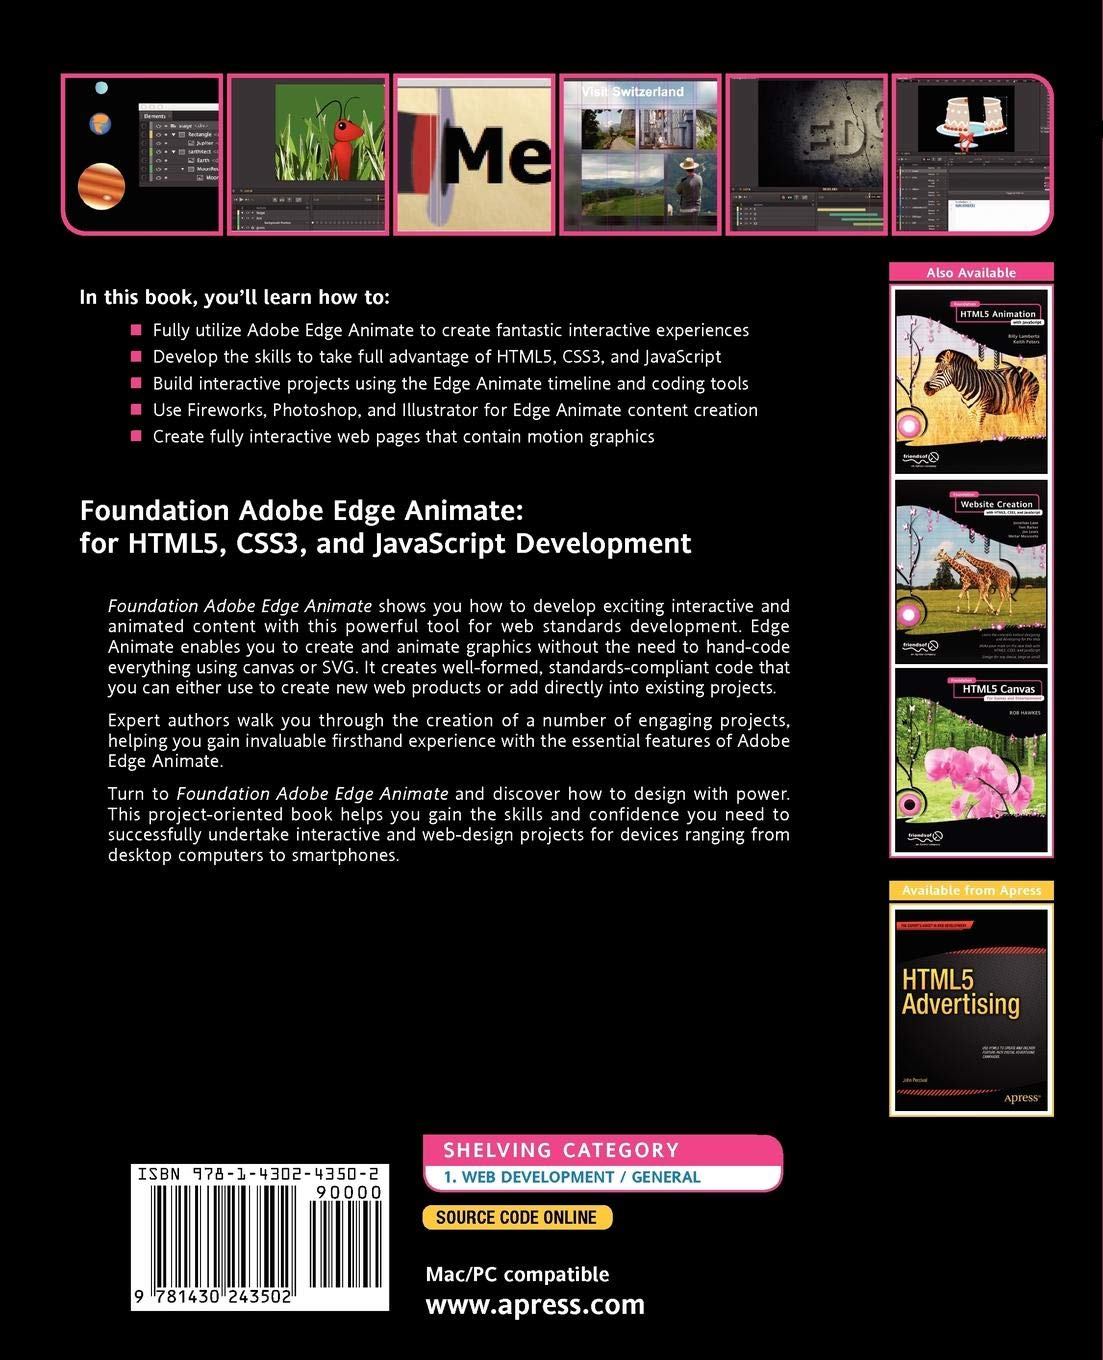 Buy Foundation Adobe Edge Animate: for HTML5, CSS3, and